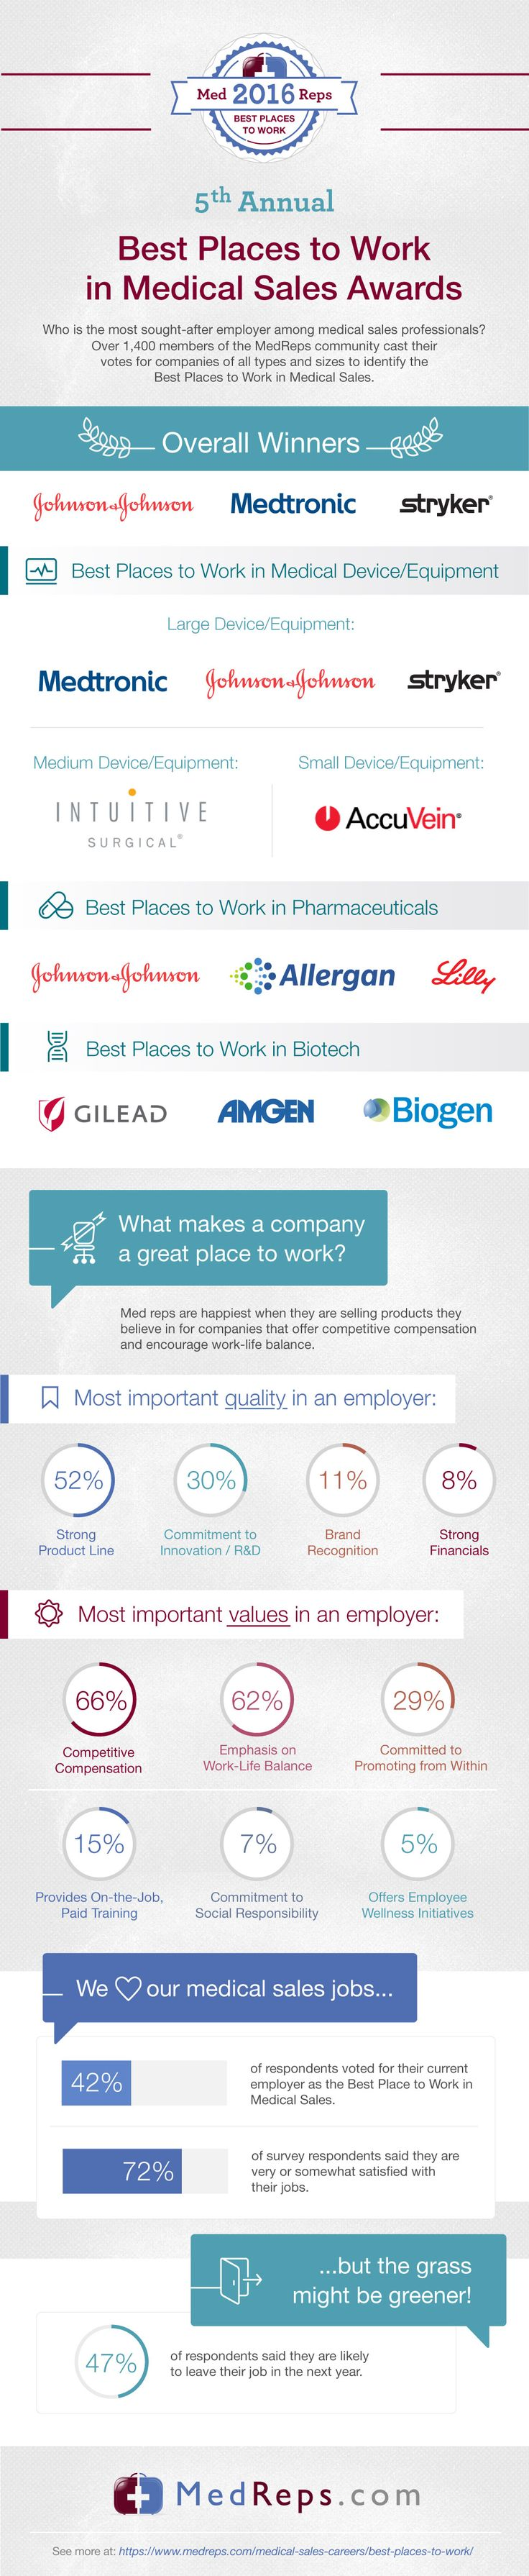 Where Are the Best Places to Work for Medical Sales?